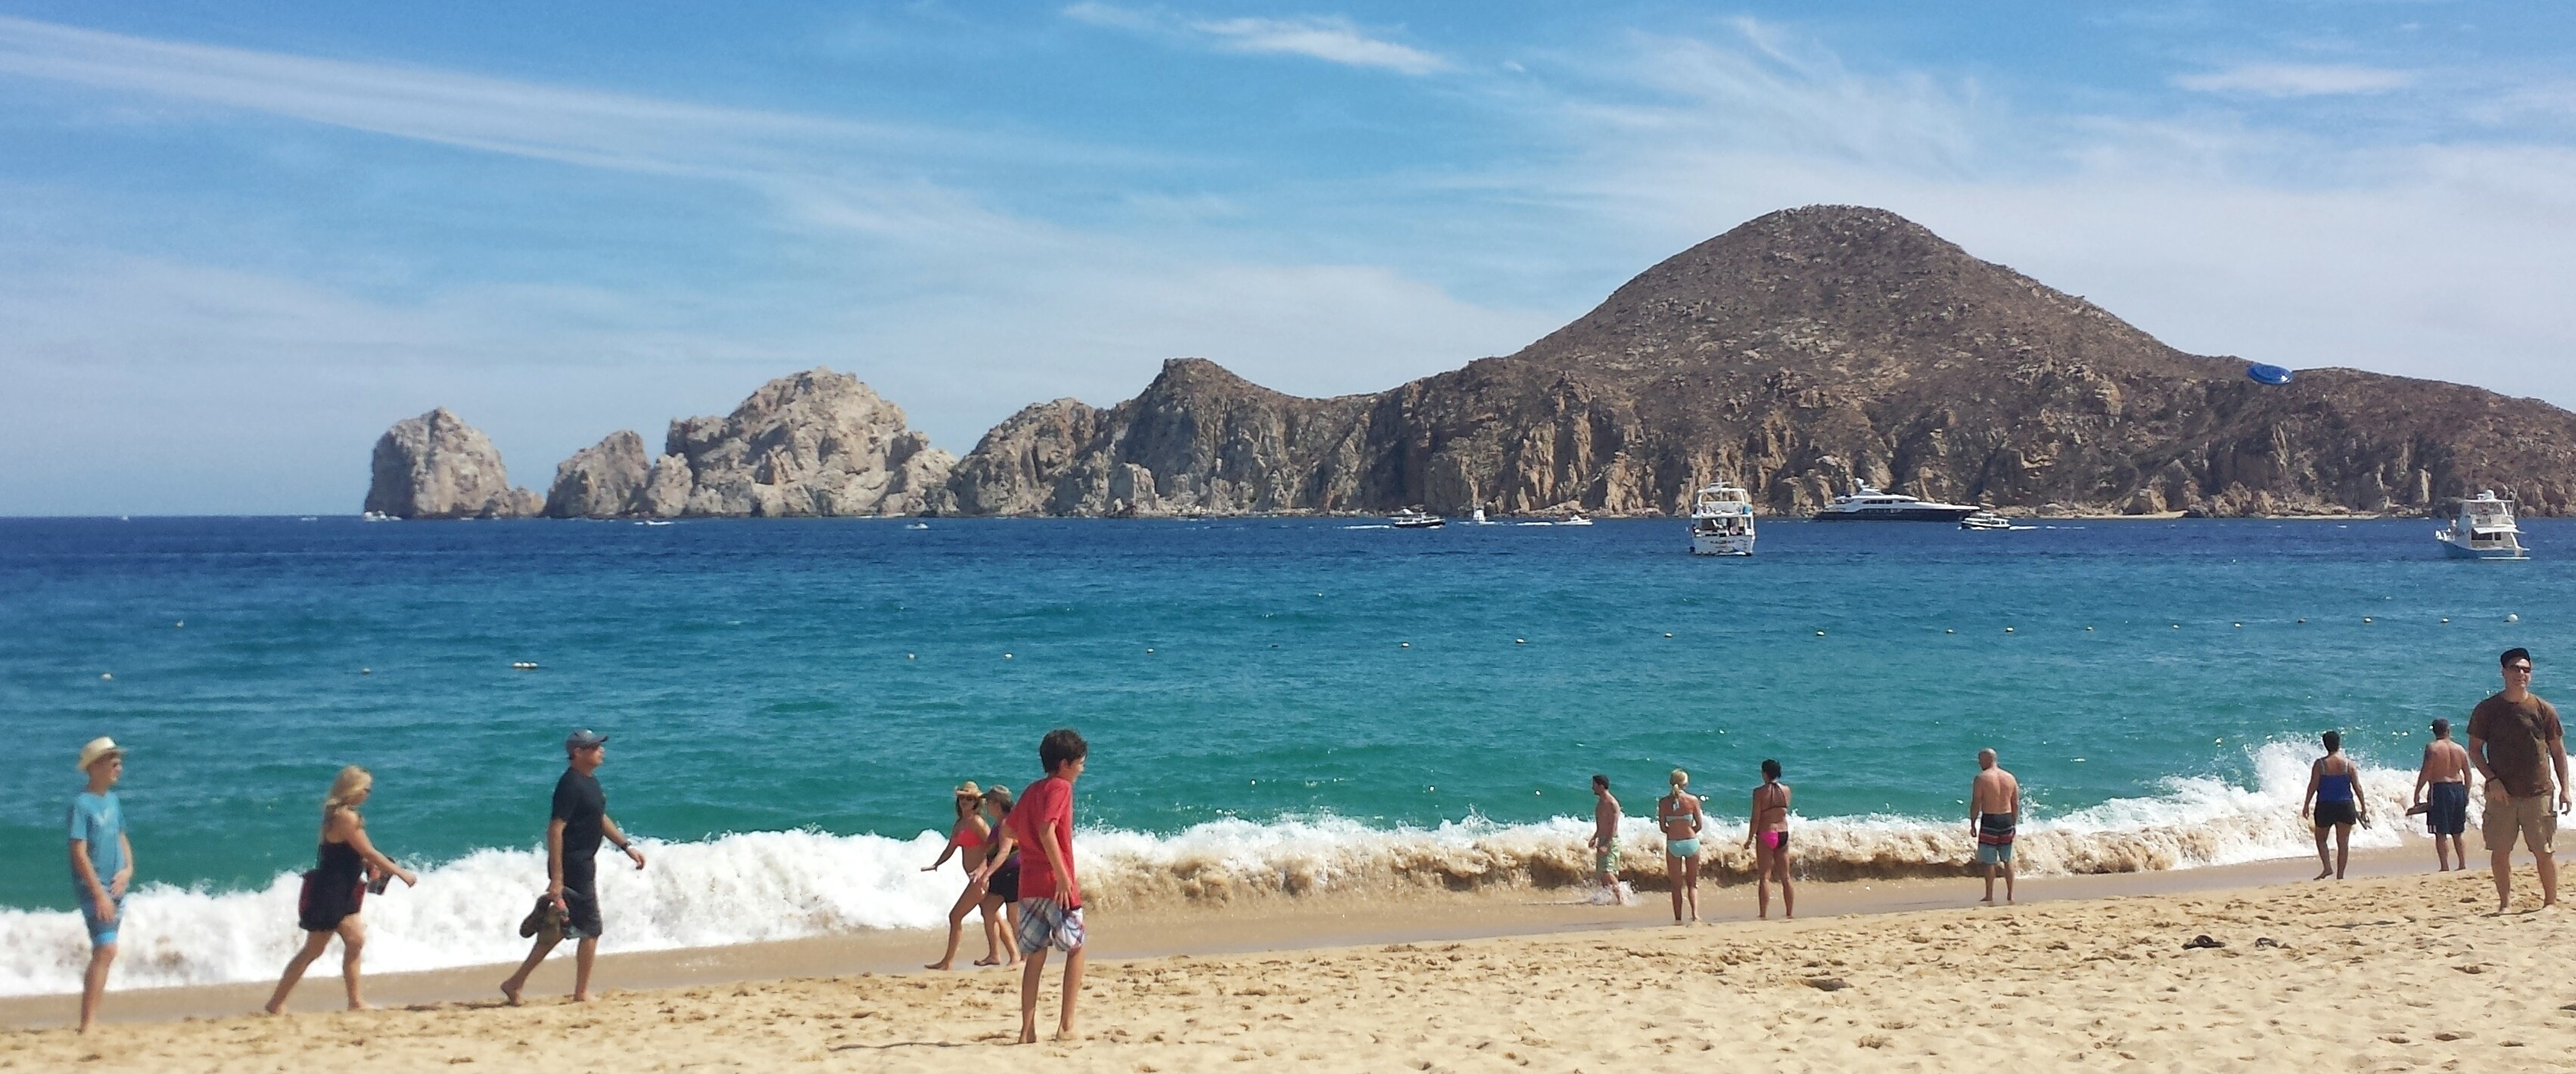 Vacation in Cabo, Mexico // lynnepetre.com